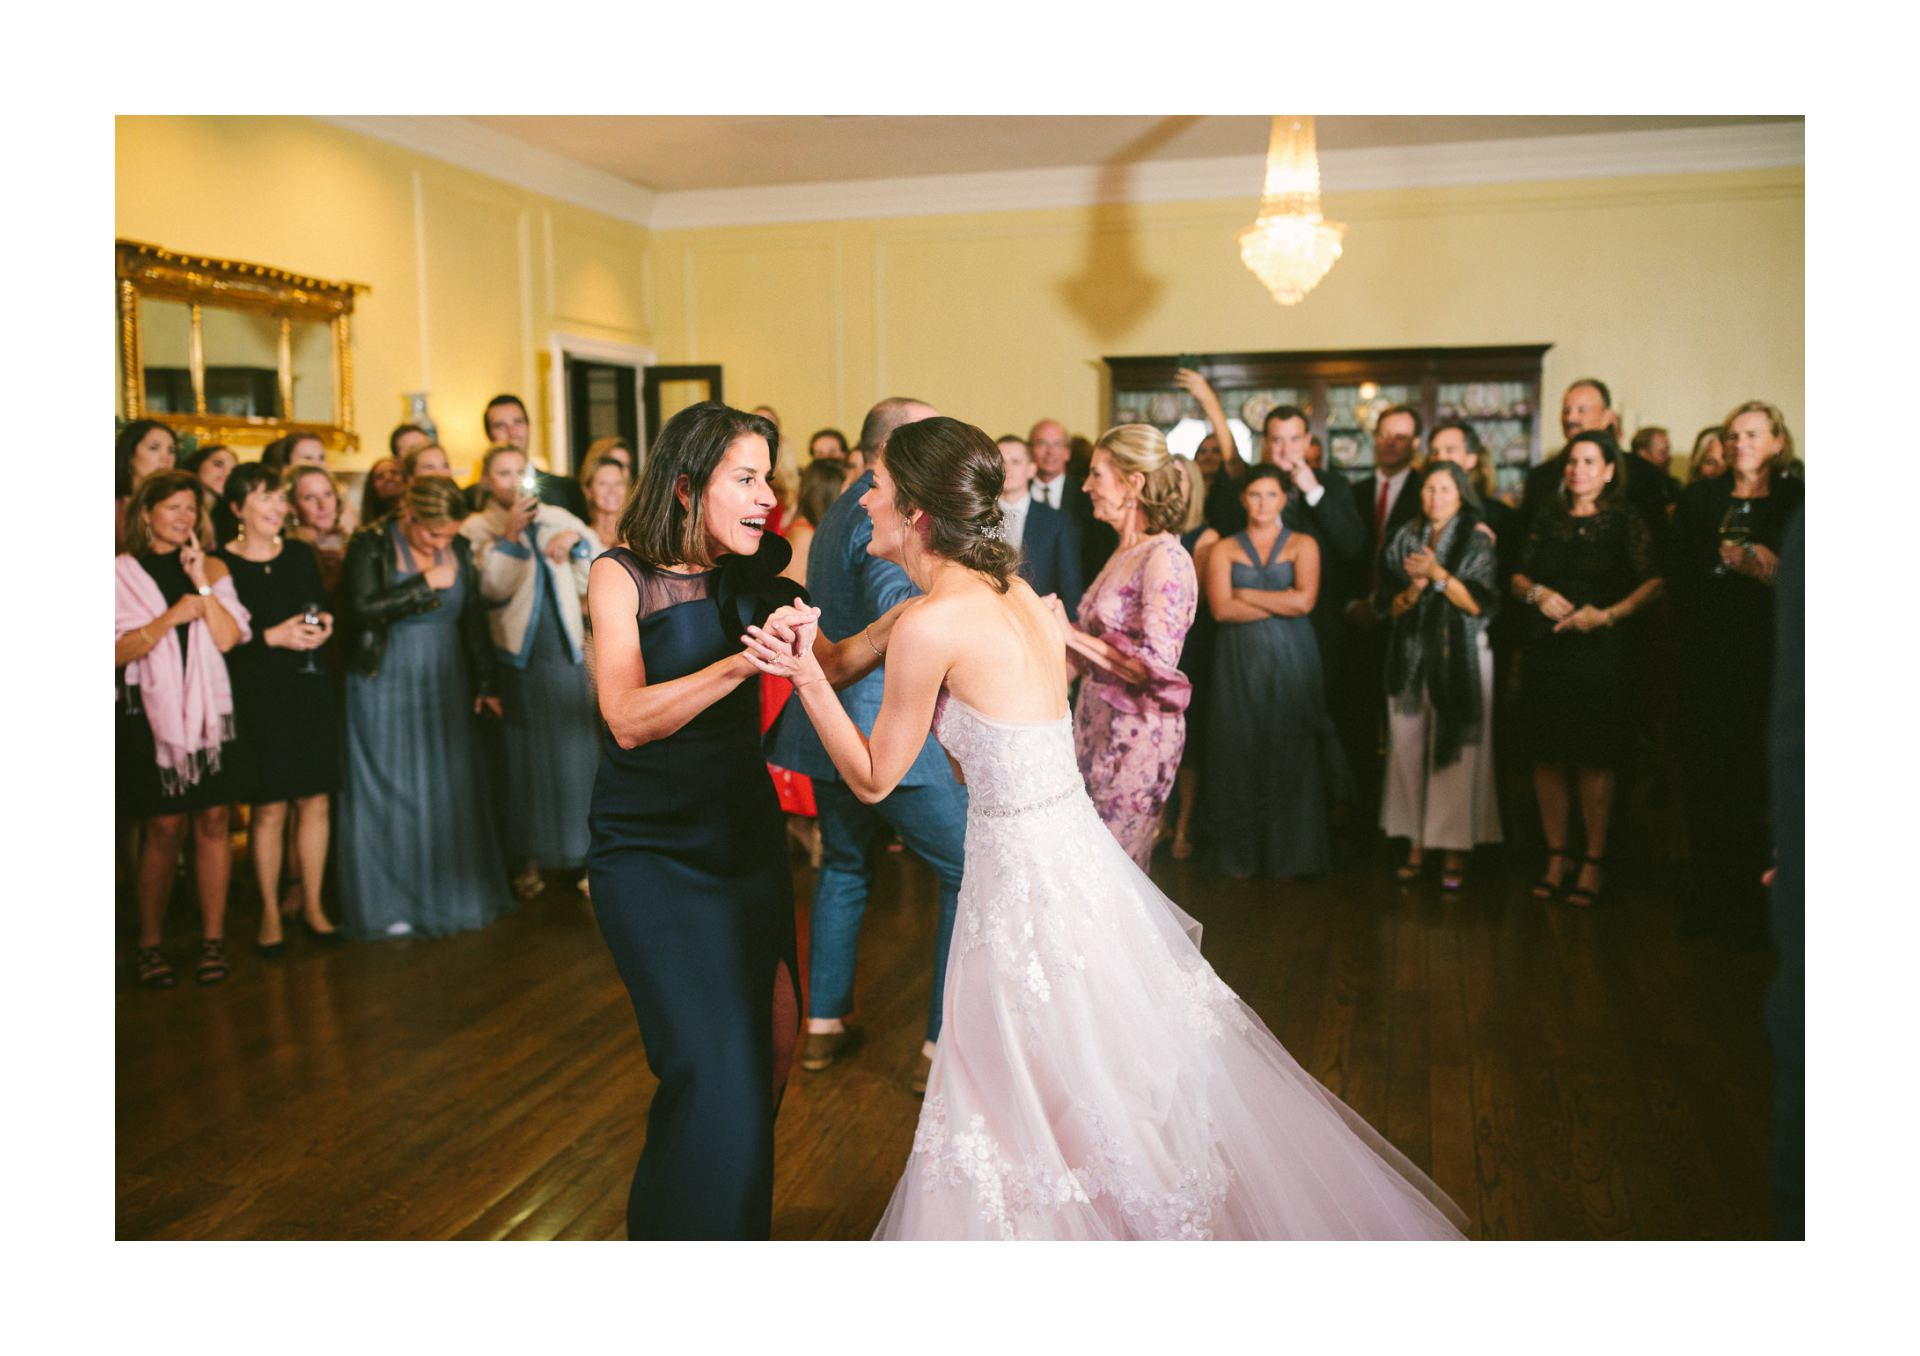 Wedding at Kirtland Country Club in Willoughby 3 44.jpg